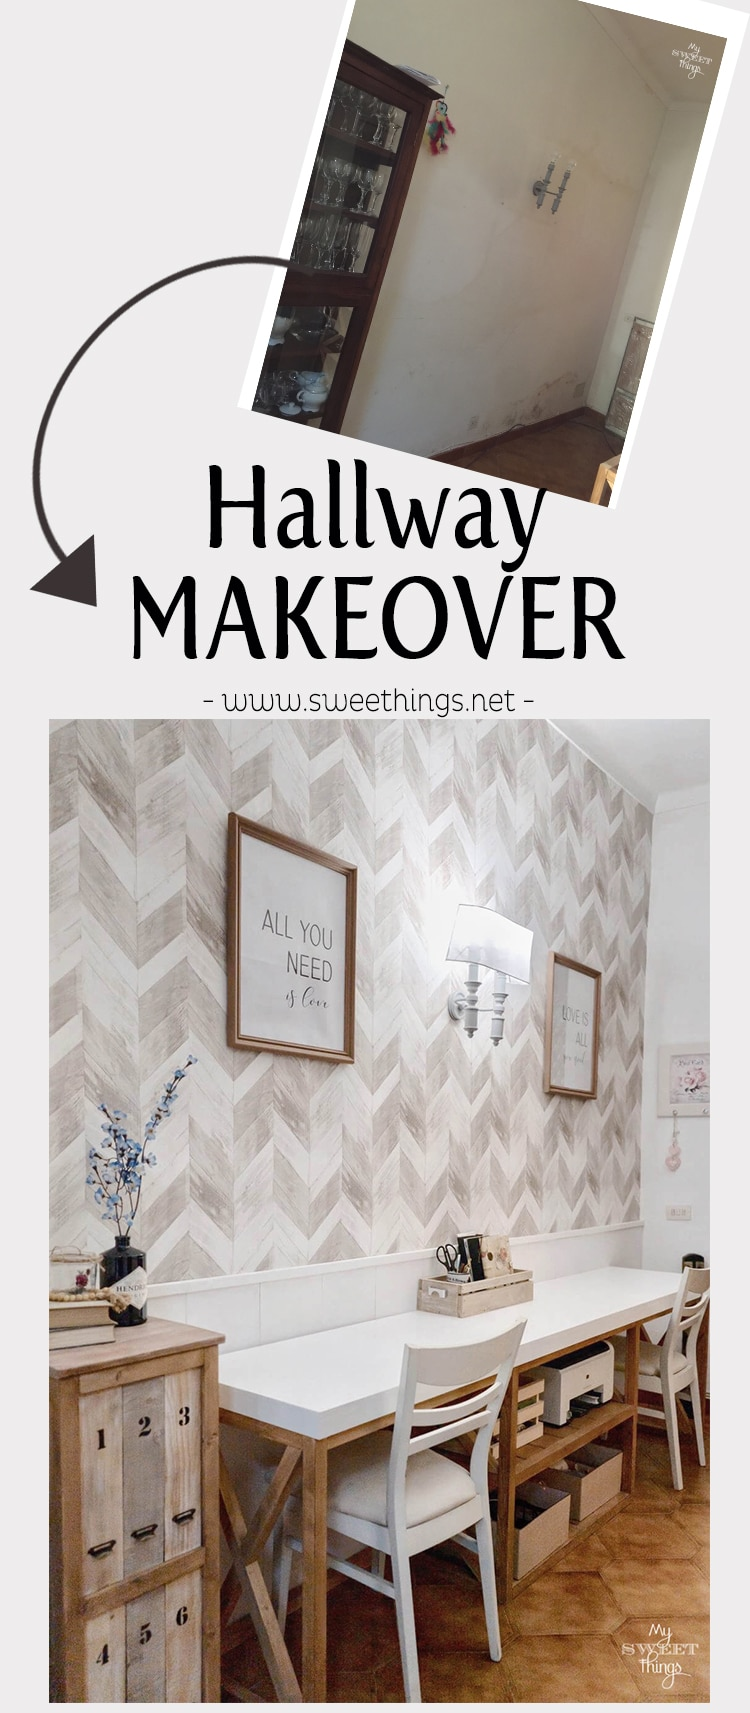 Hallway makeover on a budget · Via www.sweethings.net